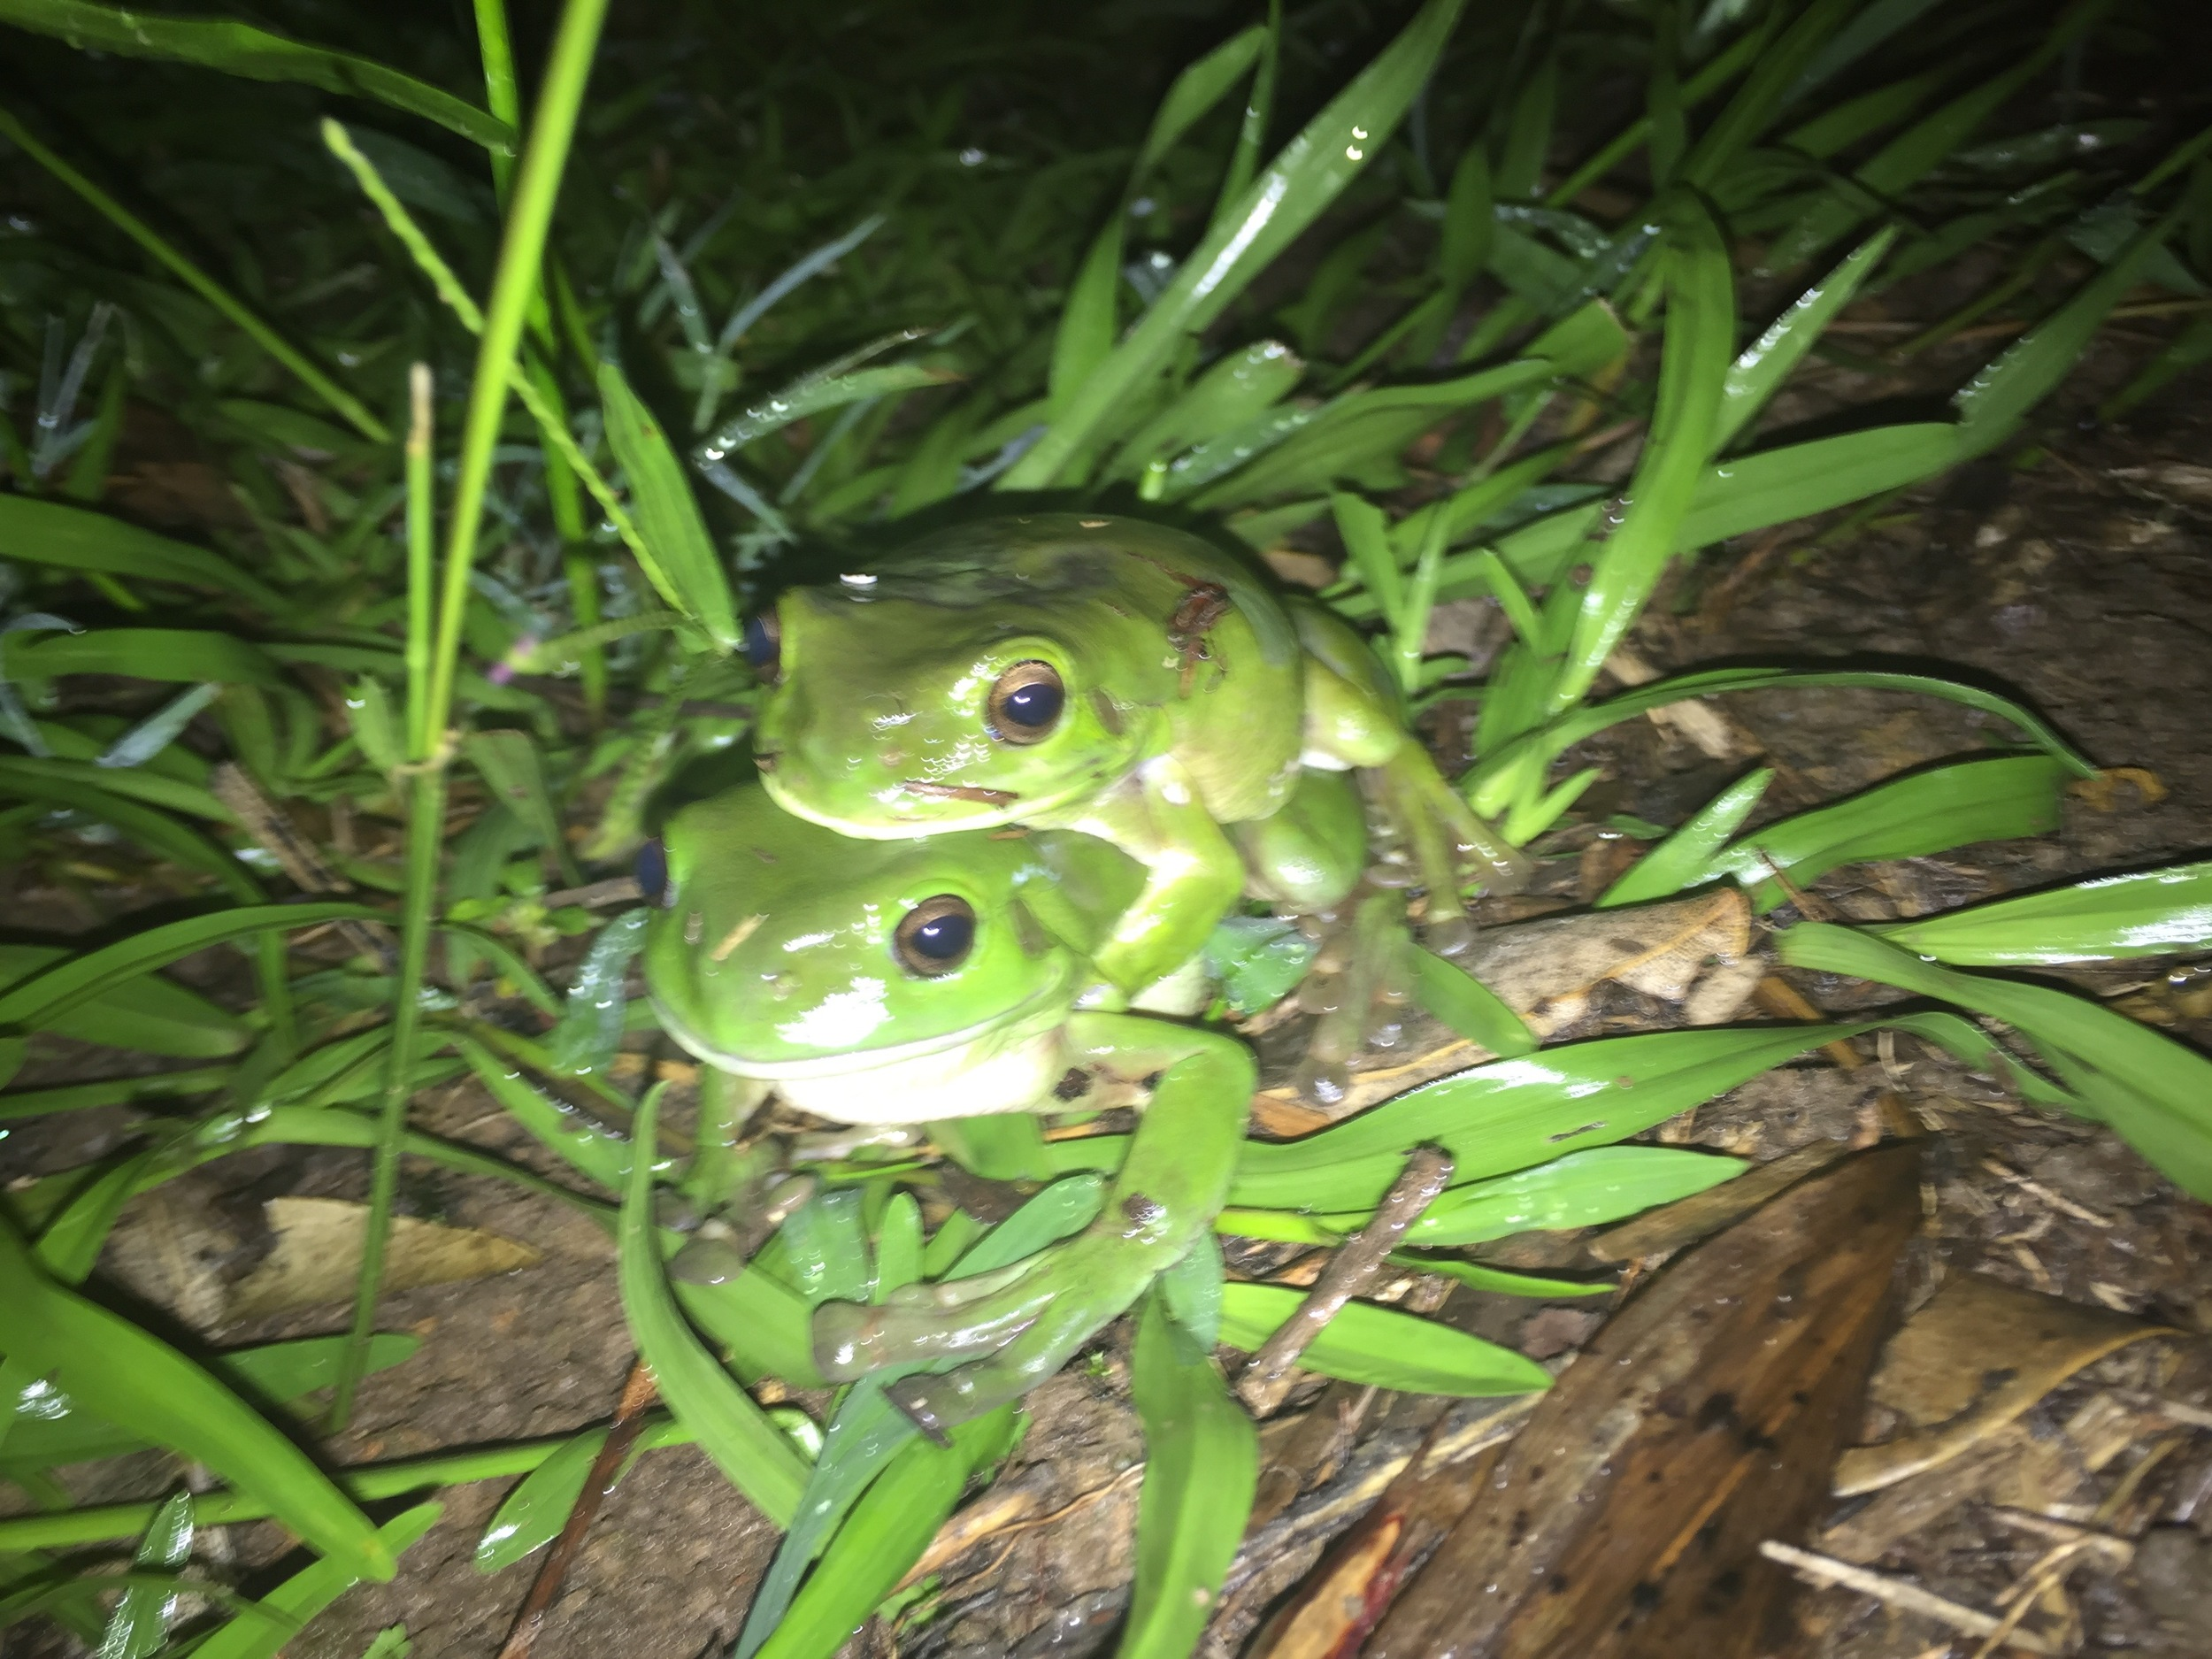 The frog pond has also attracted visitors like these green tree frogs ( Litoria caerulea ). They spend most of their lives away from frog ponds, in trees, mailboxes and  toilets , and venture to the ponds on rainy nights to breed.